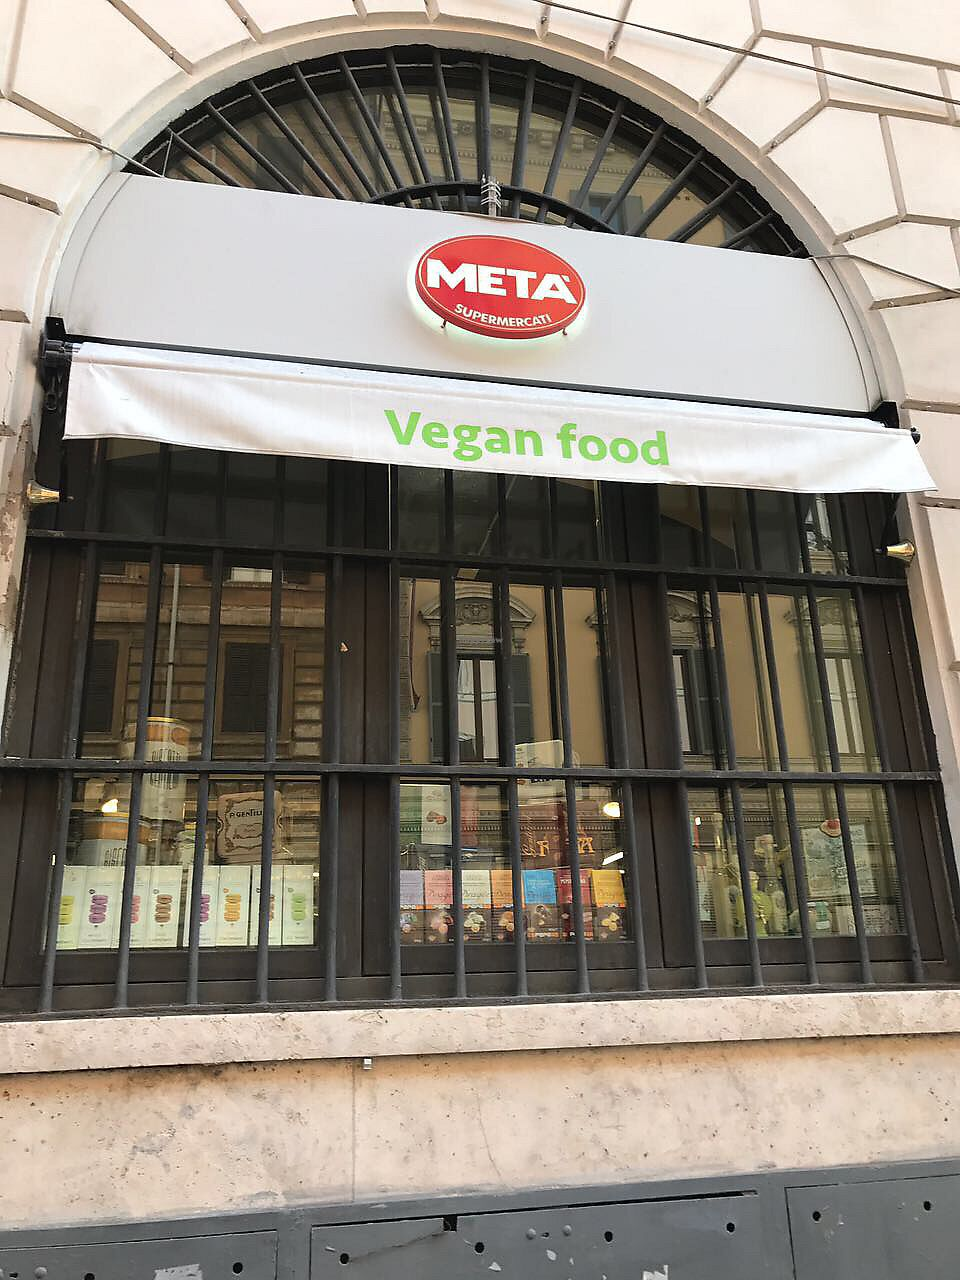 """Photo of Meta Supermercato  by <a href=""""/members/profile/PepaKovacs"""">PepaKovacs</a> <br/>One of the windows of the Store <br/> August 18, 2017  - <a href='/contact/abuse/image/97022/294021'>Report</a>"""